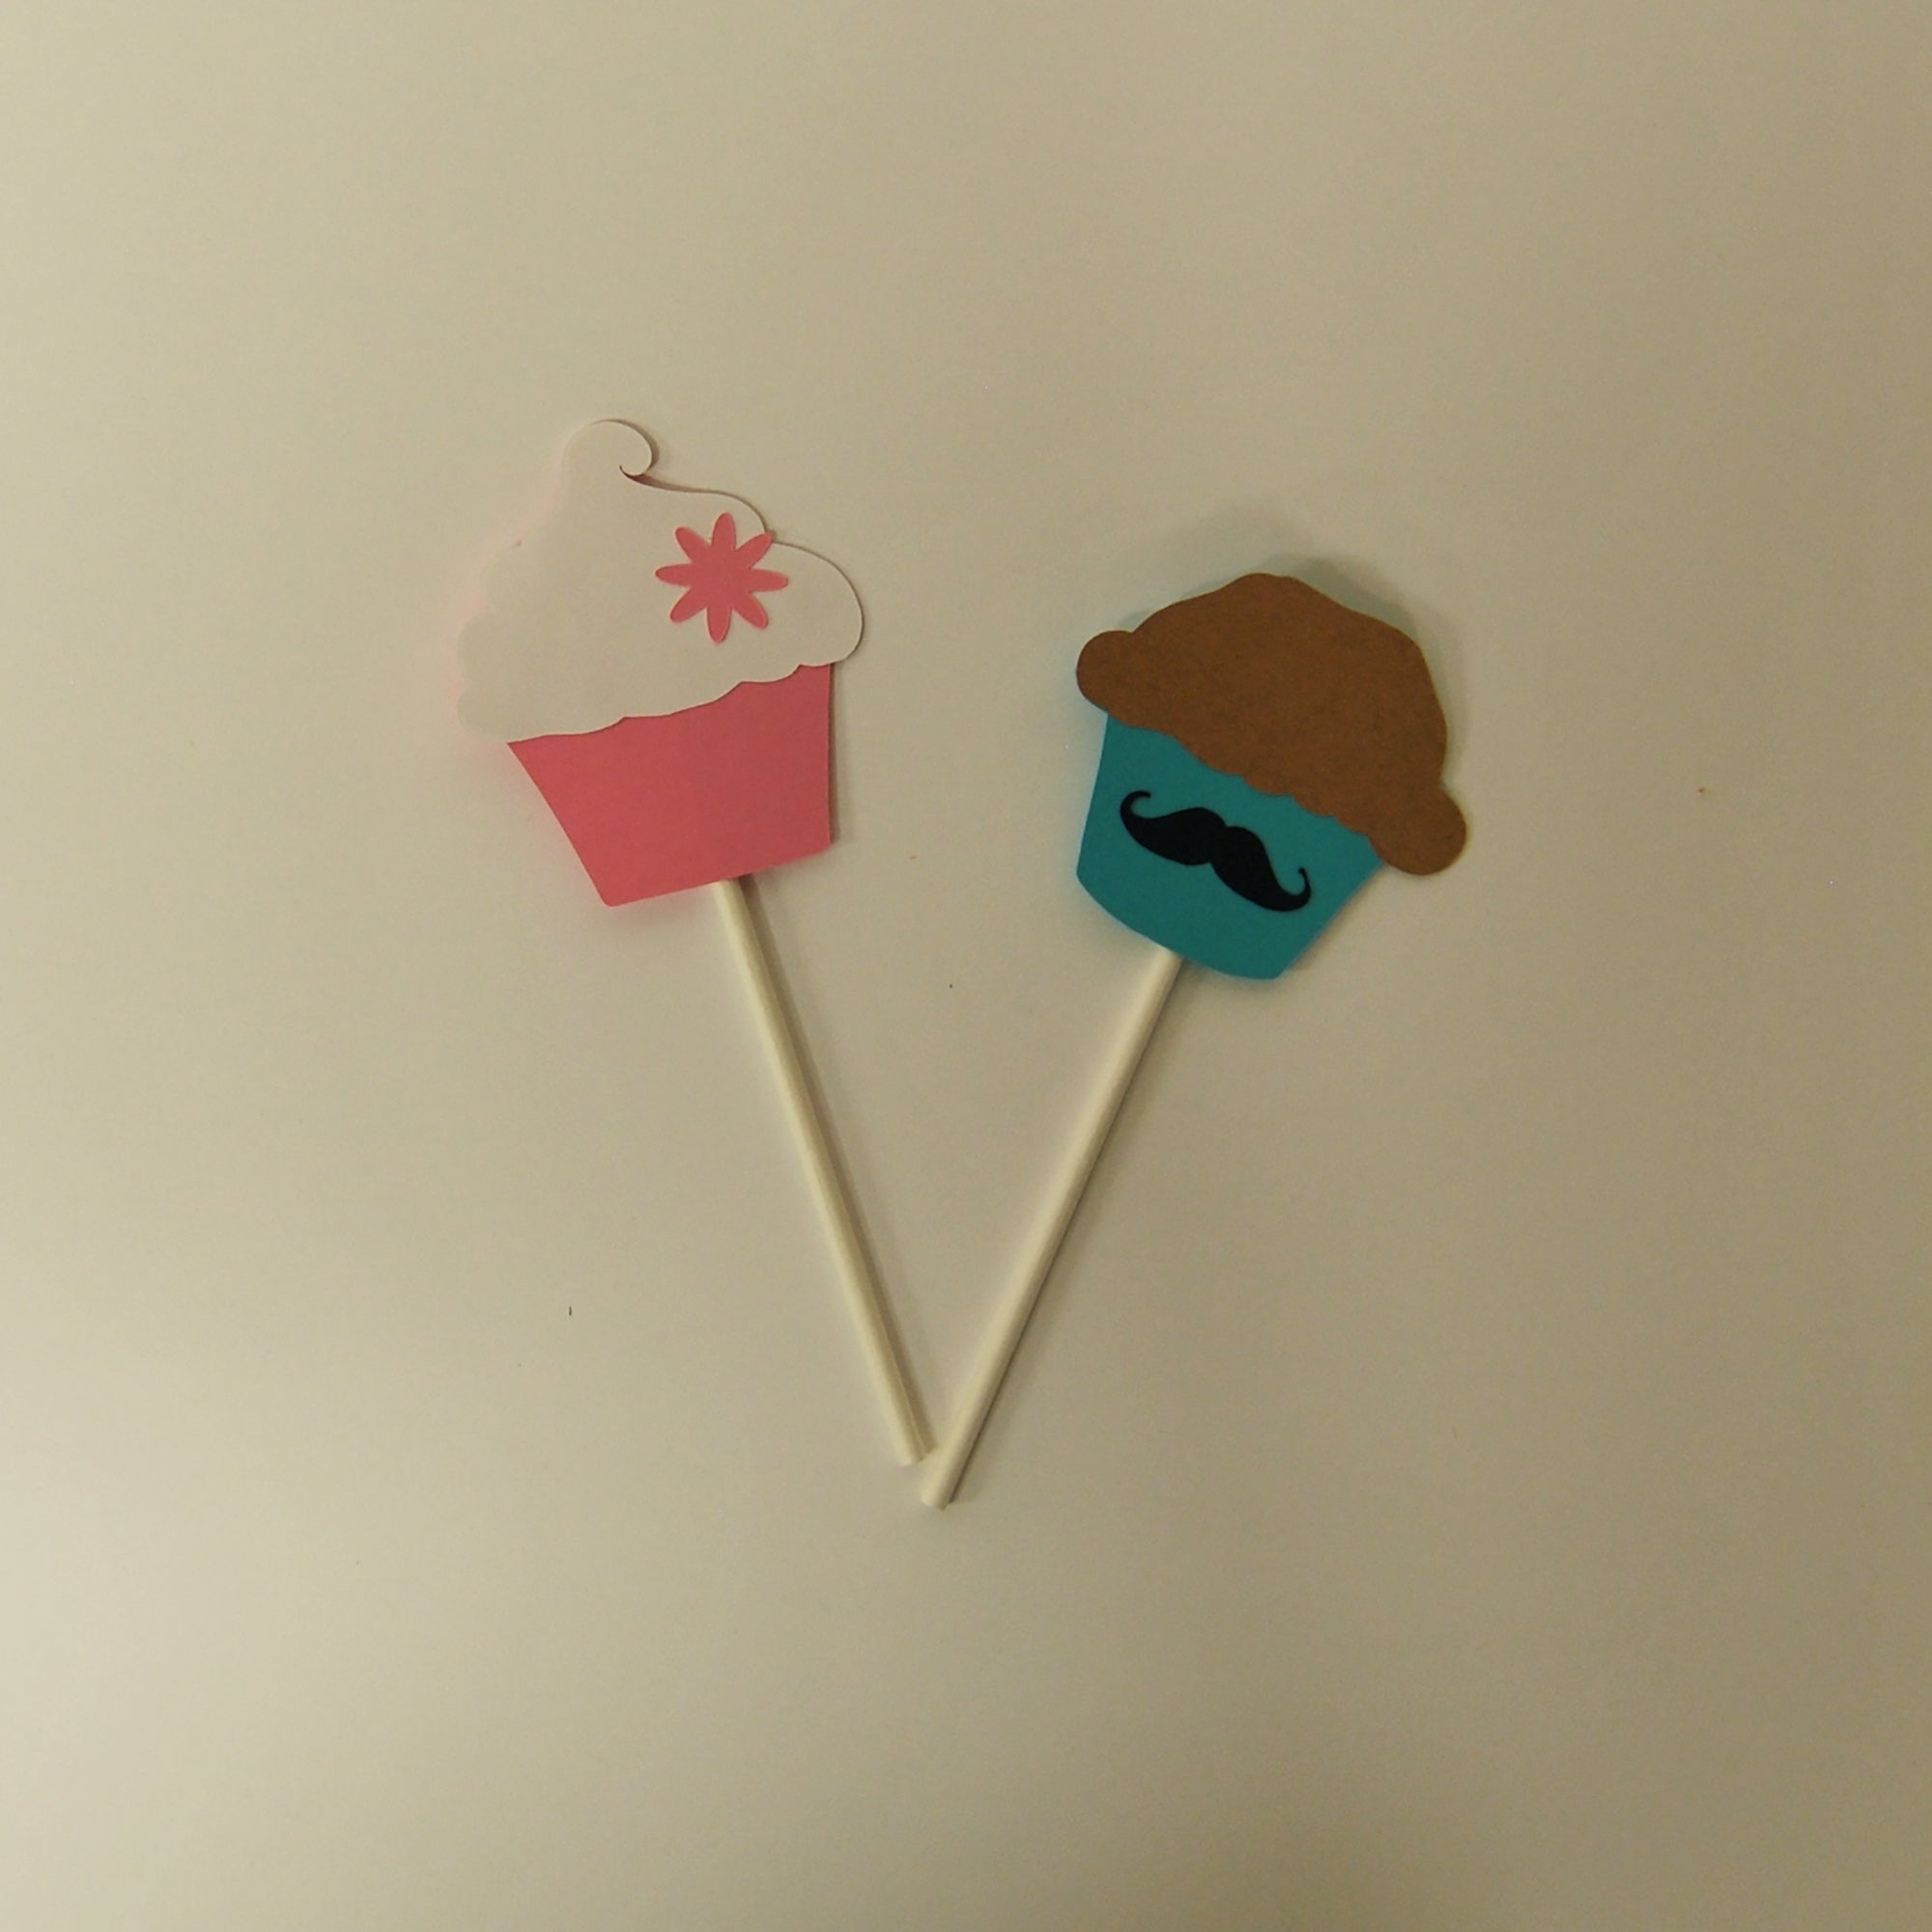 Cupcake Or Stud Muffin Gender Reveal Cupcake Toppers On Pinterest